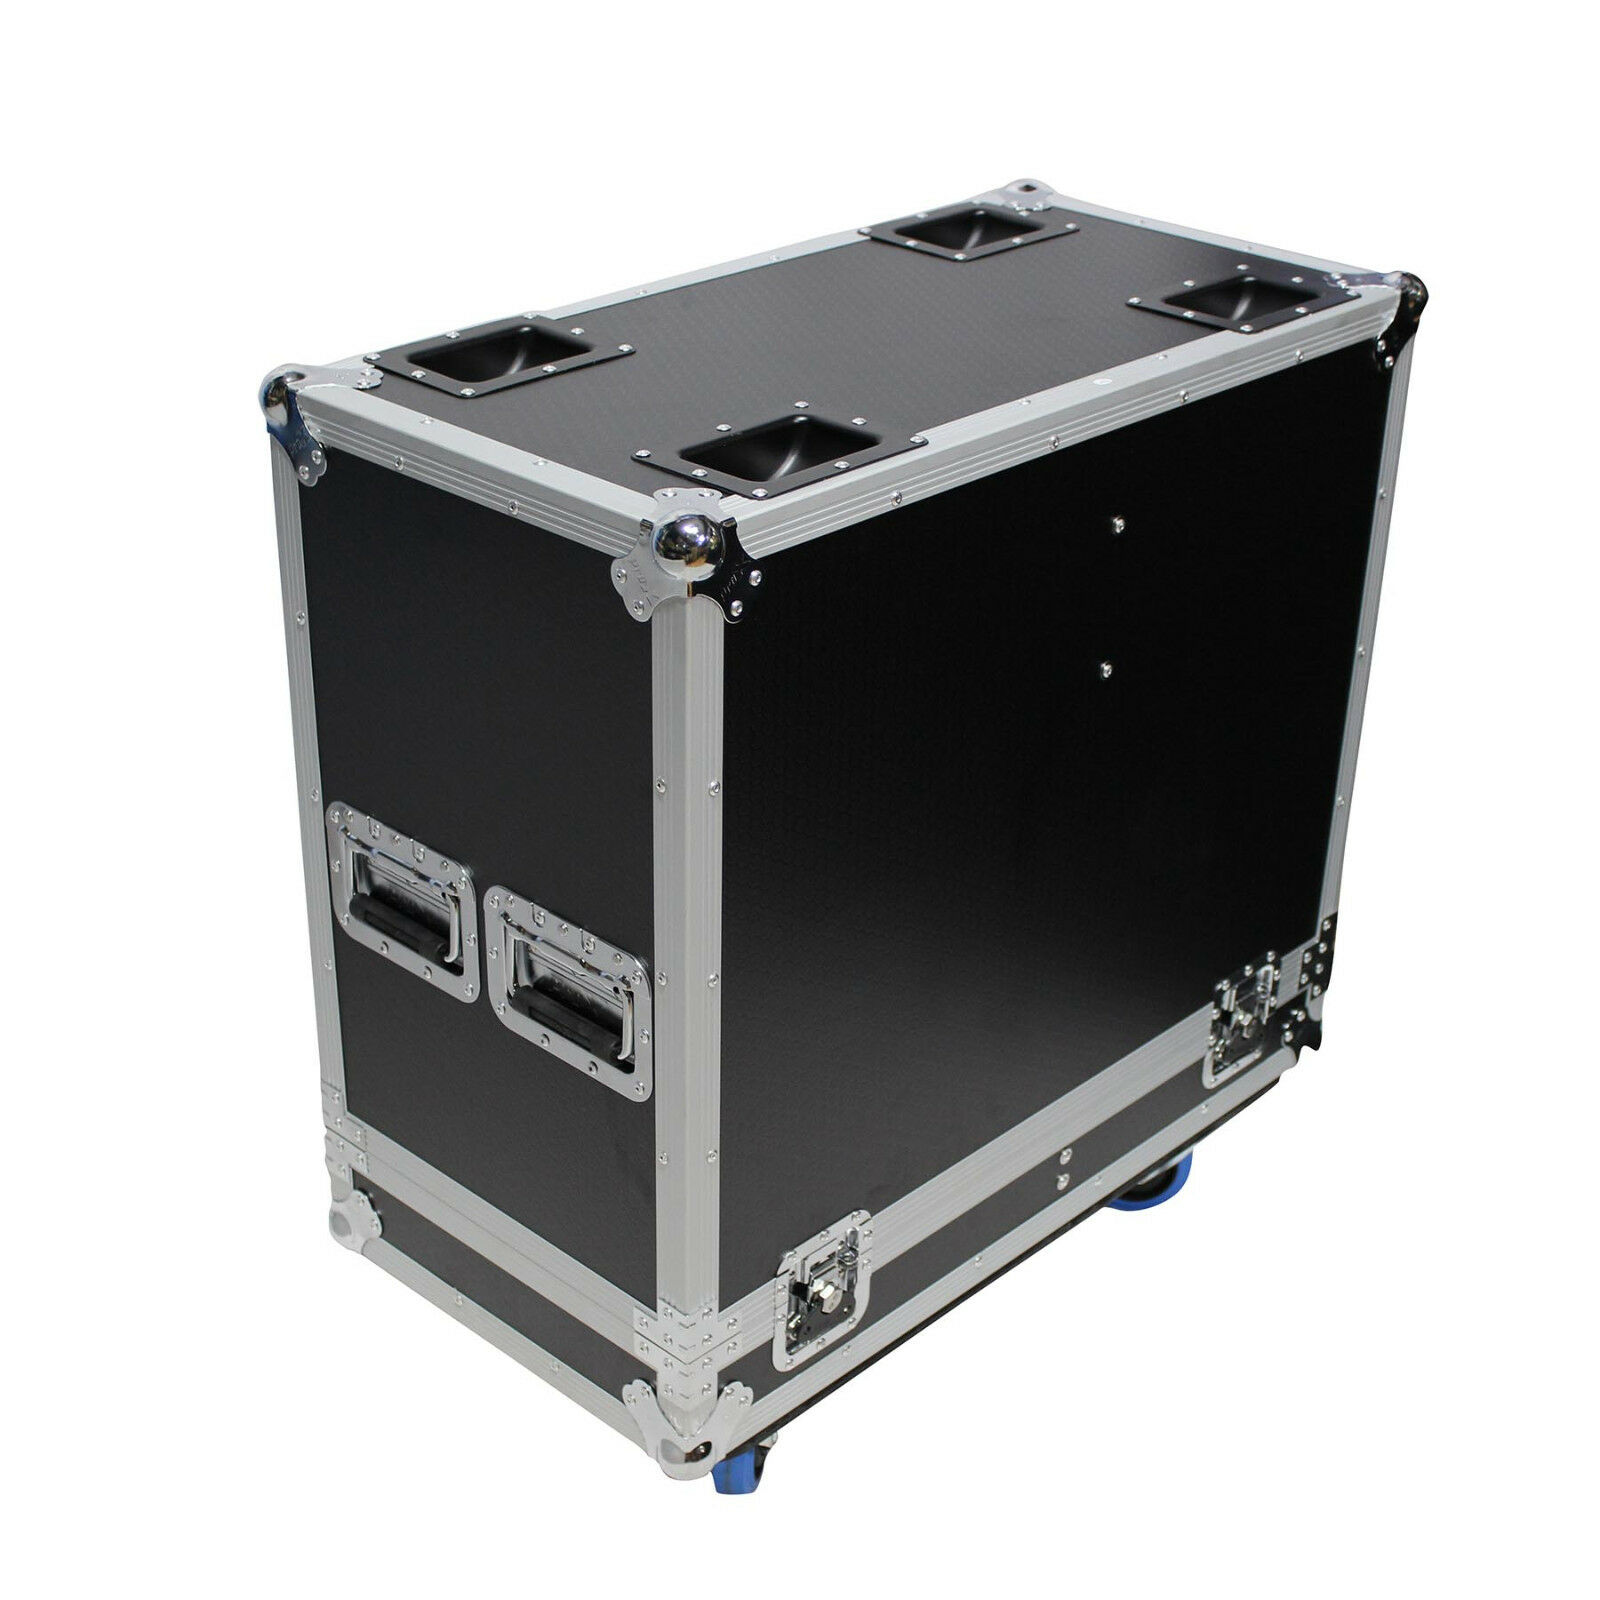 Details about ProX XS-2X12SPW ProX Universal 2x 12' Speakers ATA Flight  Road Case QSC EV RCF